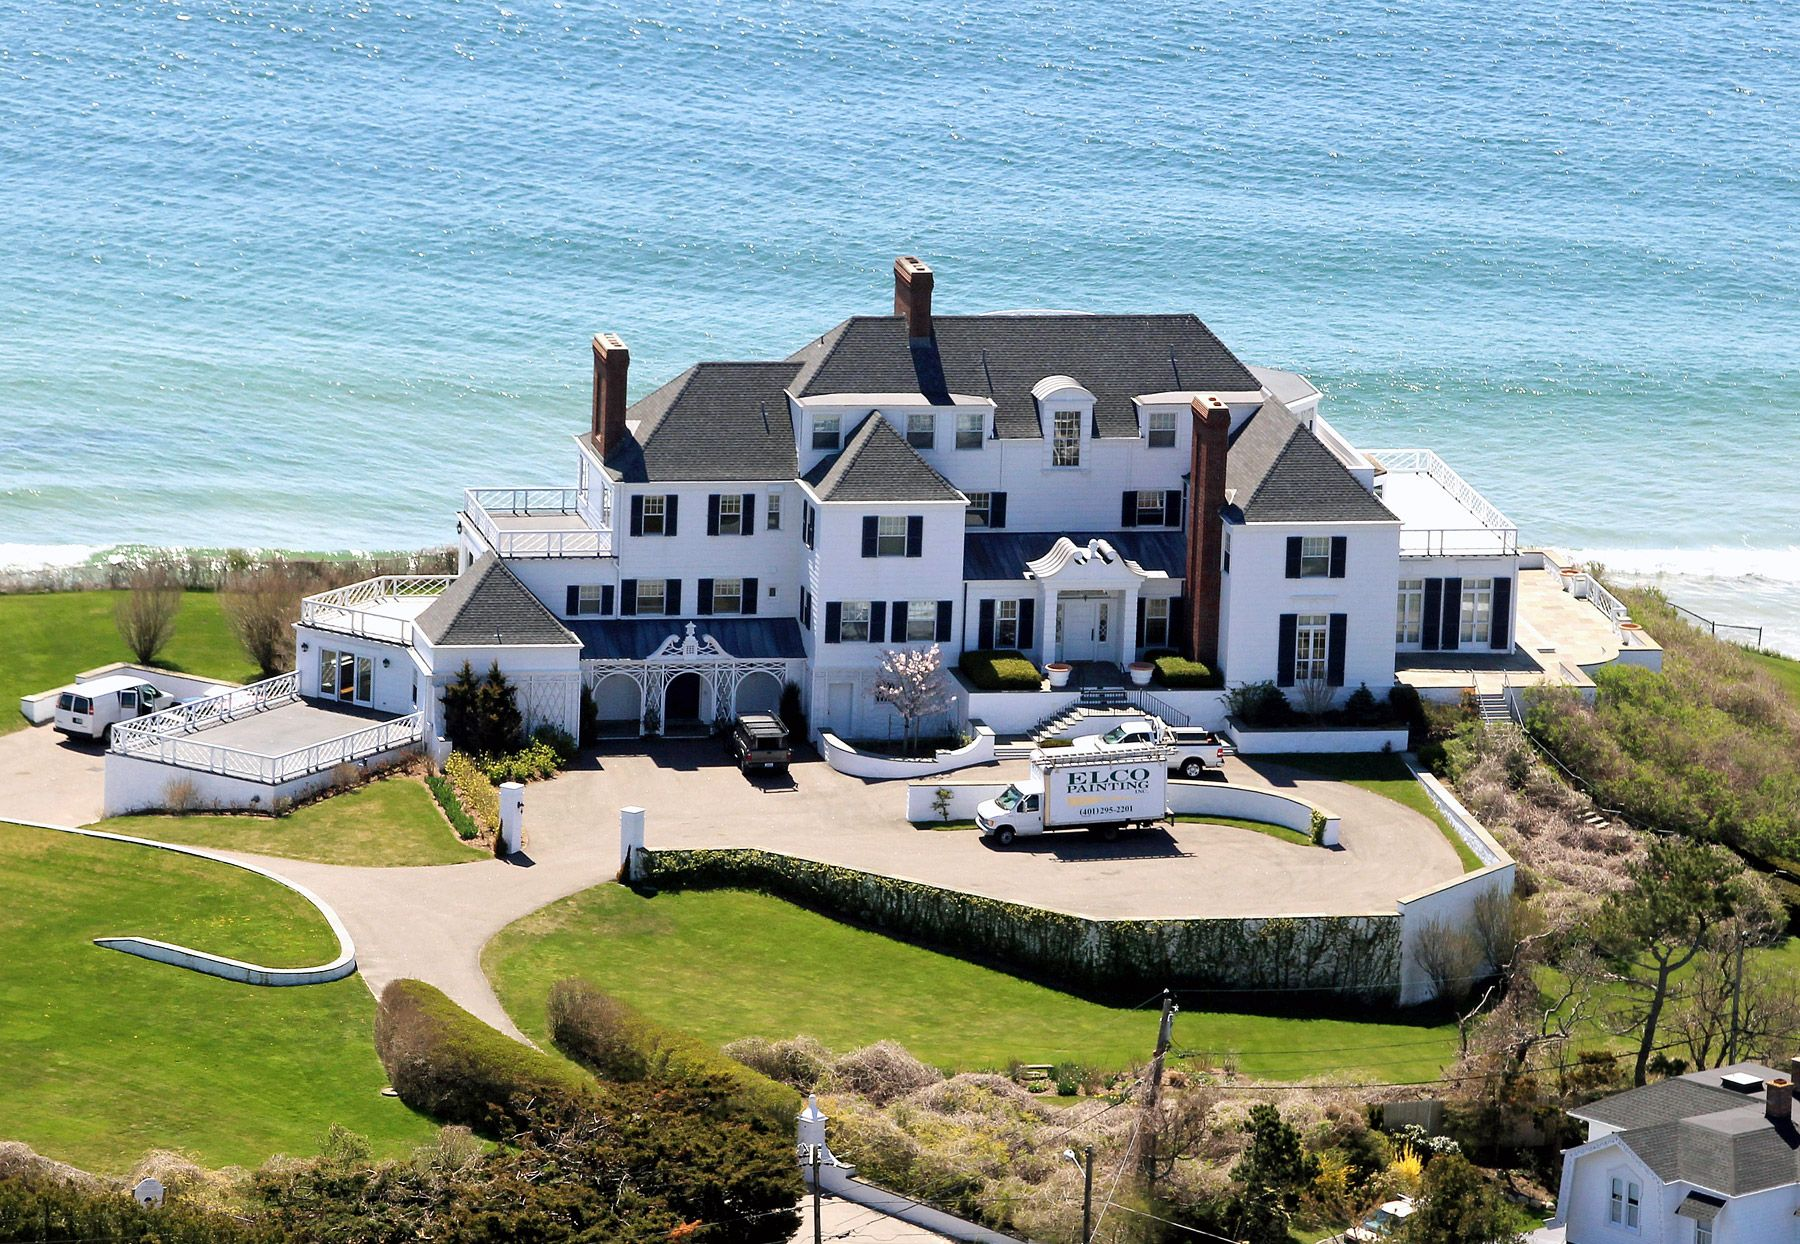 Taylor Swift Moves Into $17 Million Rhode Island Mansion